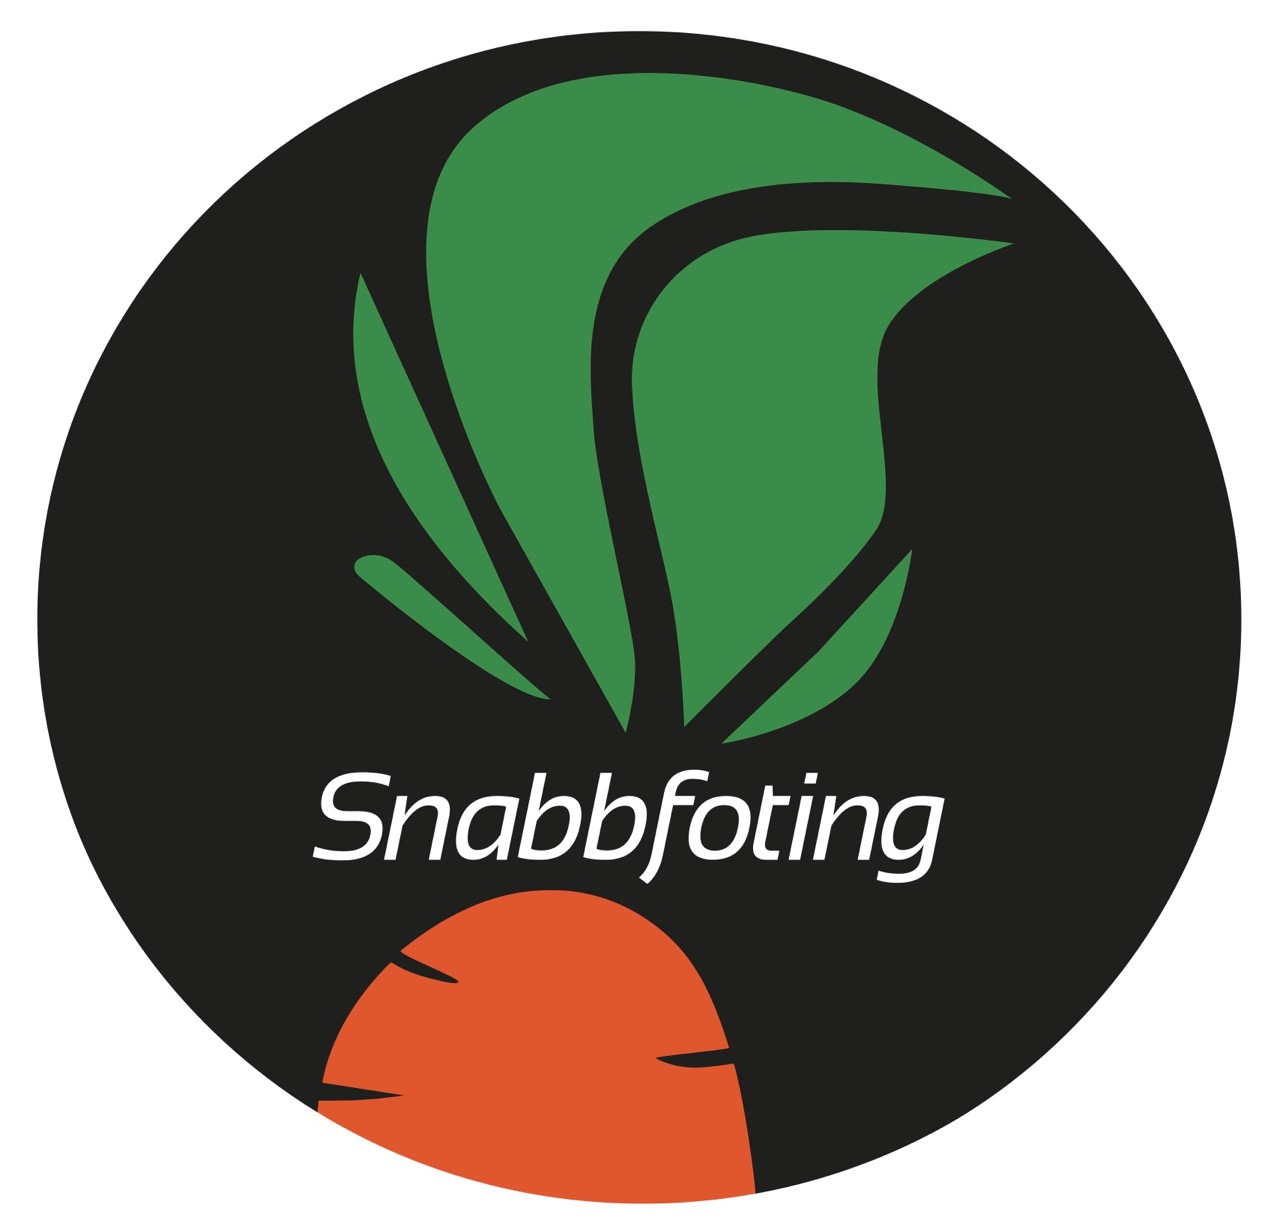 SNABBFOTINGGROUP_MOROT_PMS